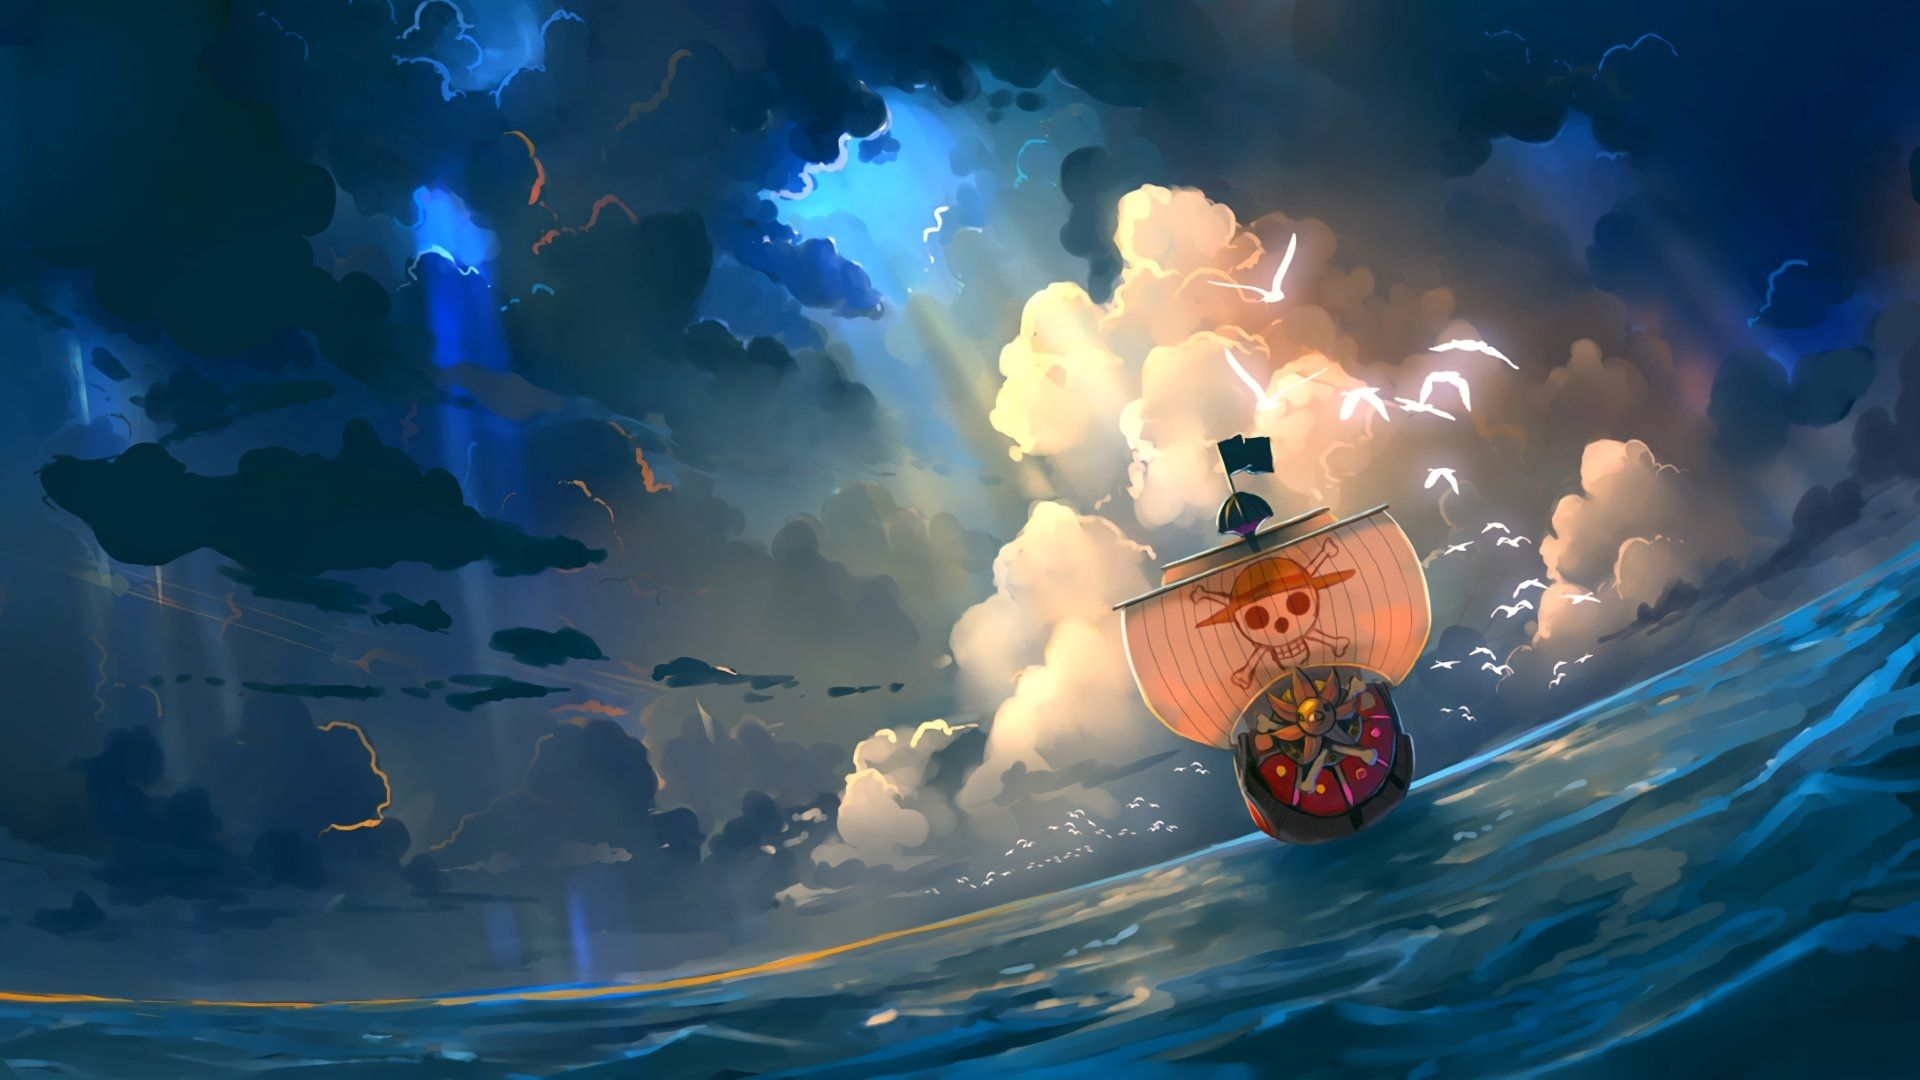 One Piece Cool Wallpapers posted by Michelle Mercado